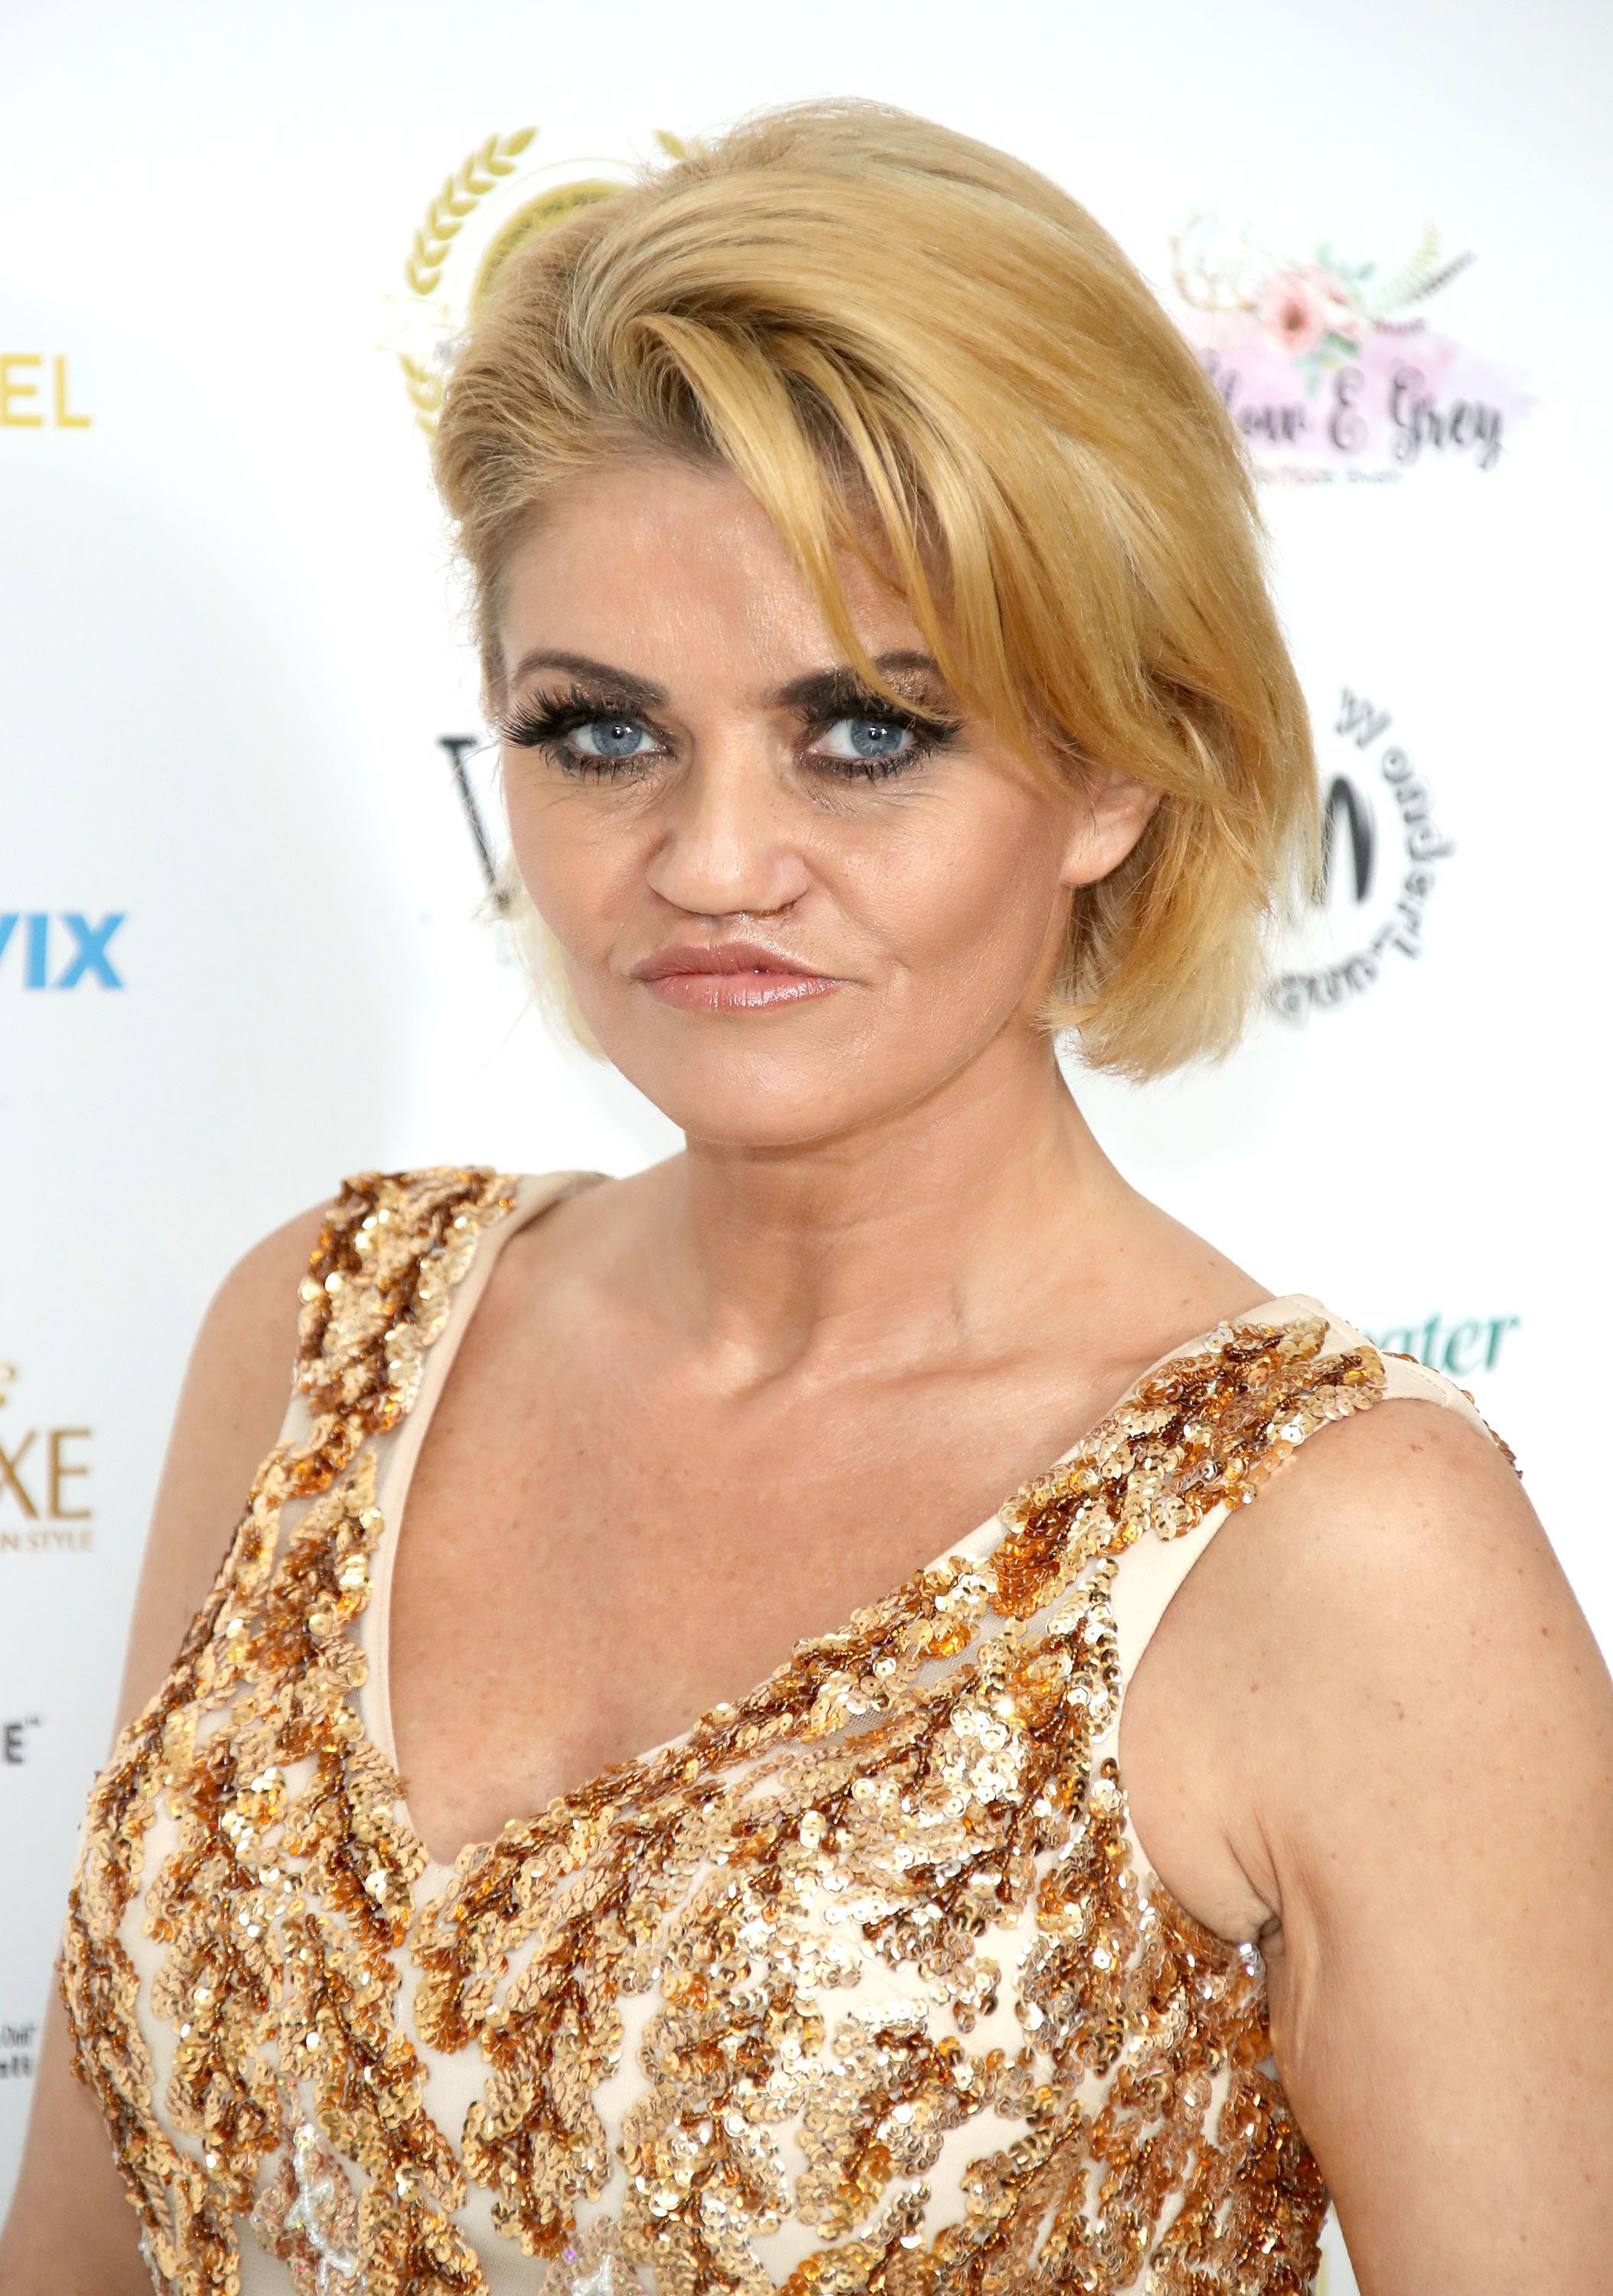 Danniella Westbrook Says Her Face Is 'Rotting Away' Due To Botched Surgery